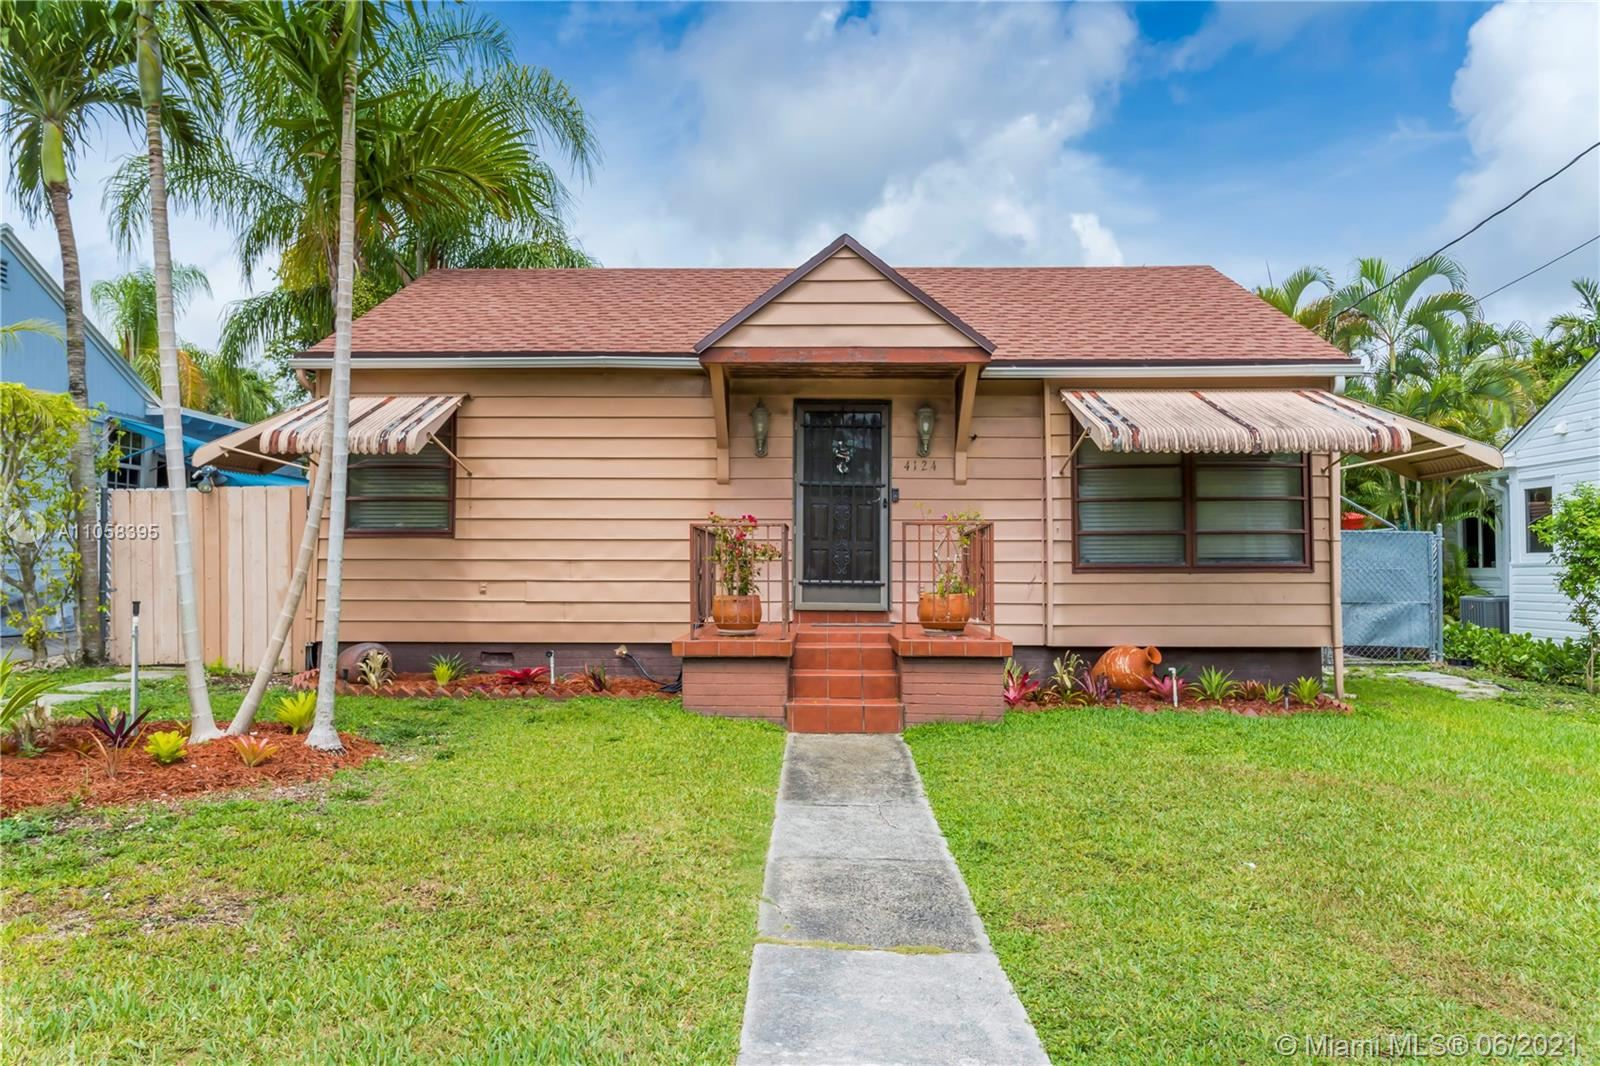 Photo of 4124 SW 62nd Ave, South Miami, FL 33155 (MLS # A11058395)